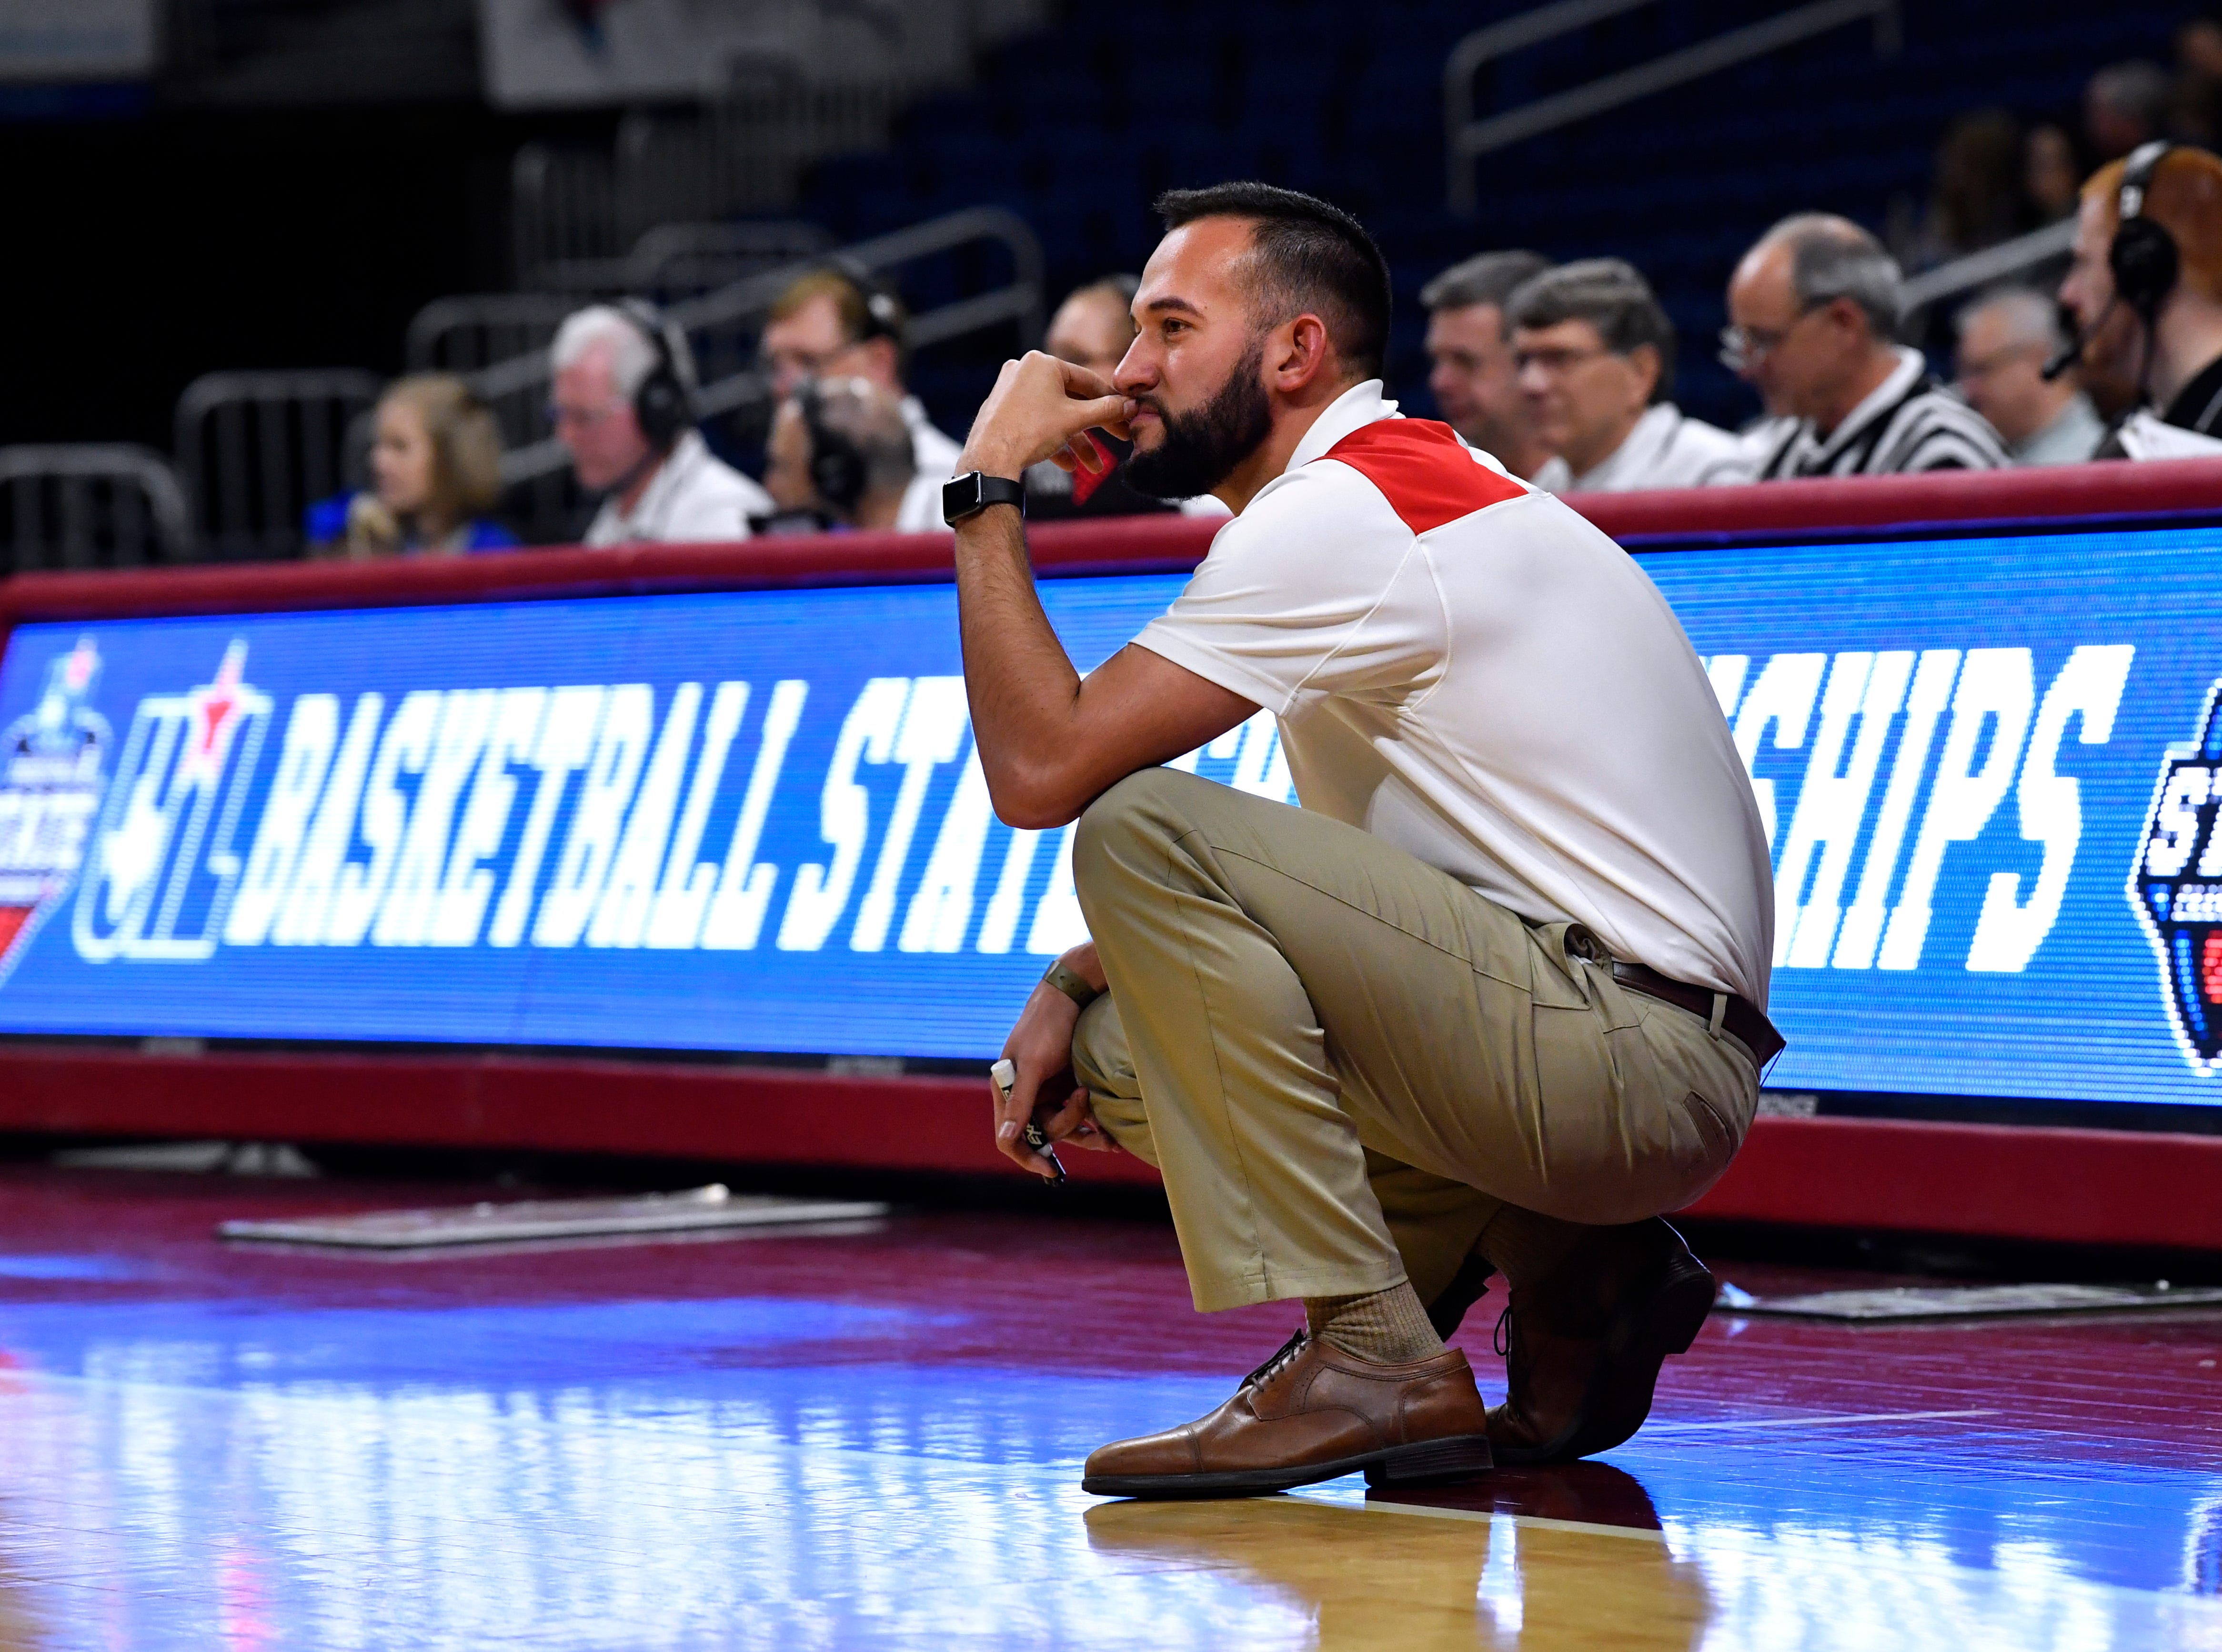 Hermleigh Lady Cardinals head coach Duane Hopper watches the last plays of Thursday's UIL Class 1A girls state basketball semifinal at the Alamodome in San Antonio Feb. 28, 2019.